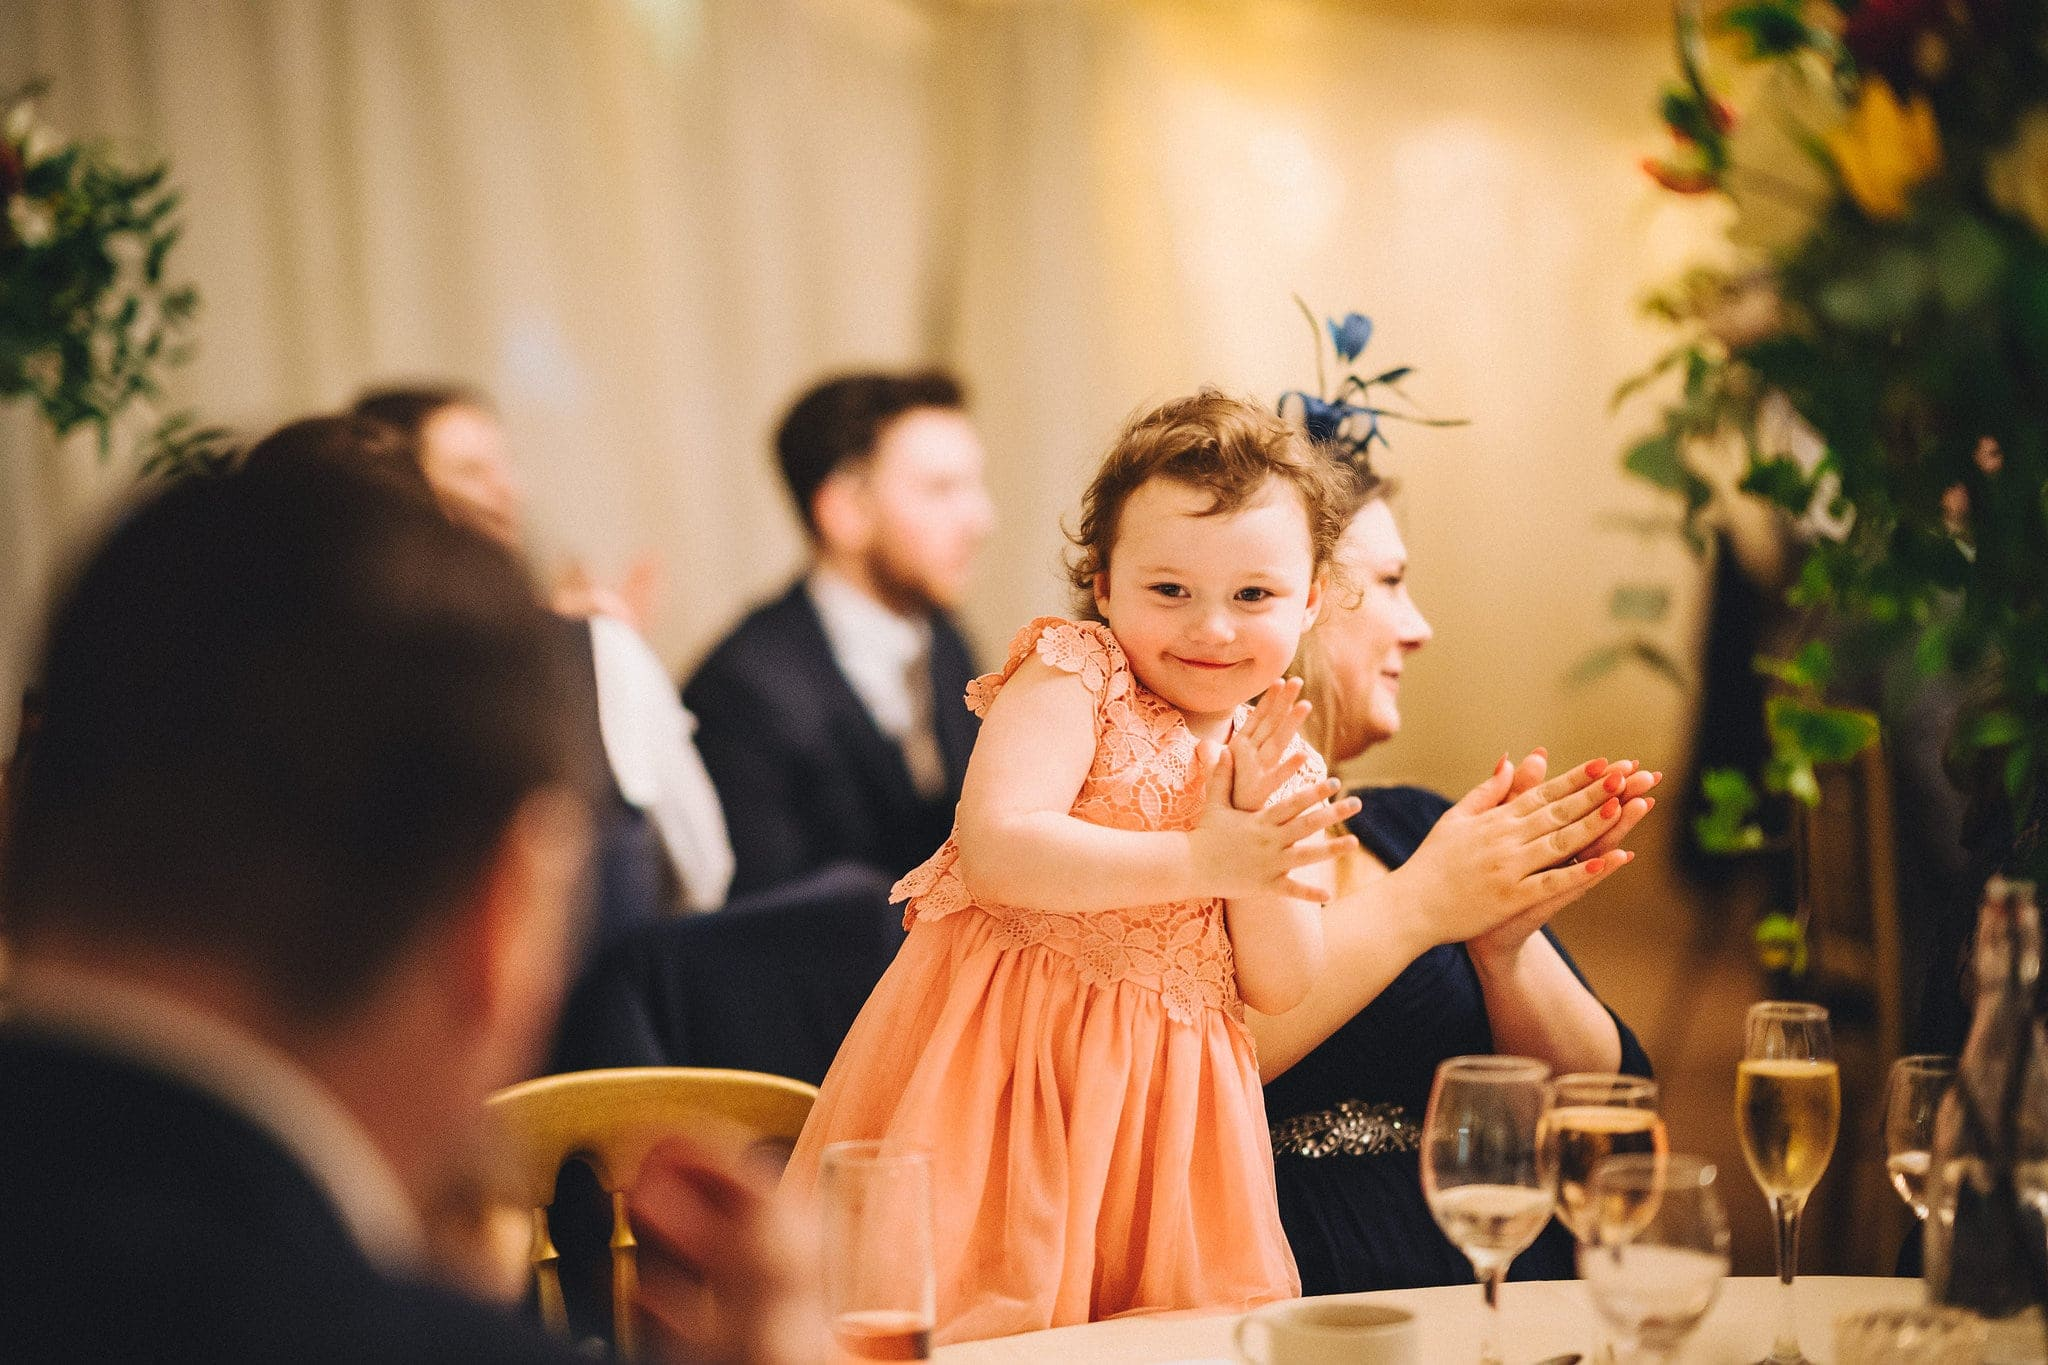 Child claps during speeches